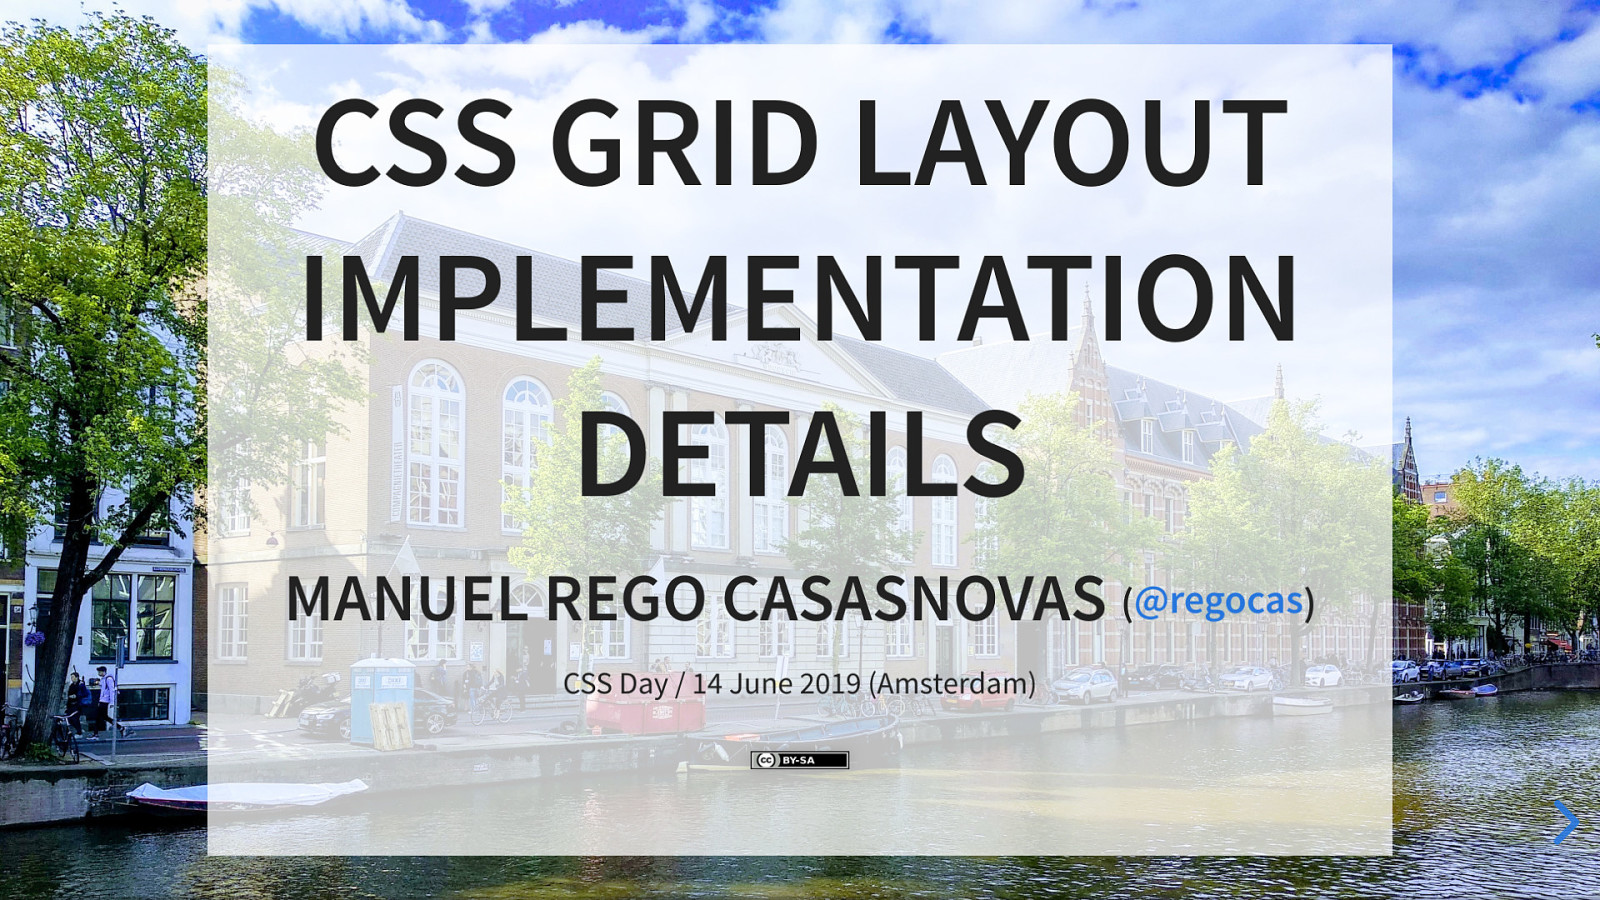 CSS Grid Layout Implementation Details